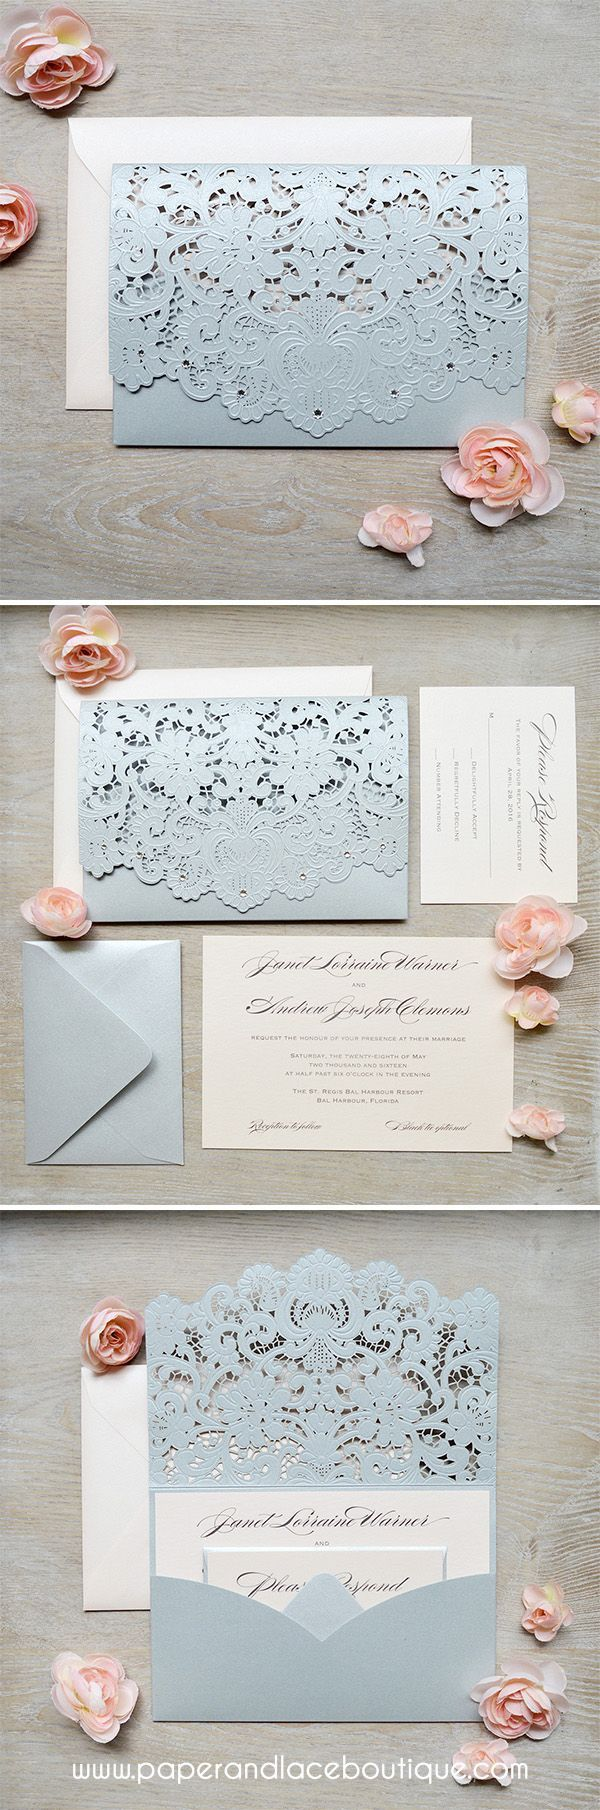 laser cut wedding invites canada%0A Silver and Blush Laser Cut Wedding Invitations